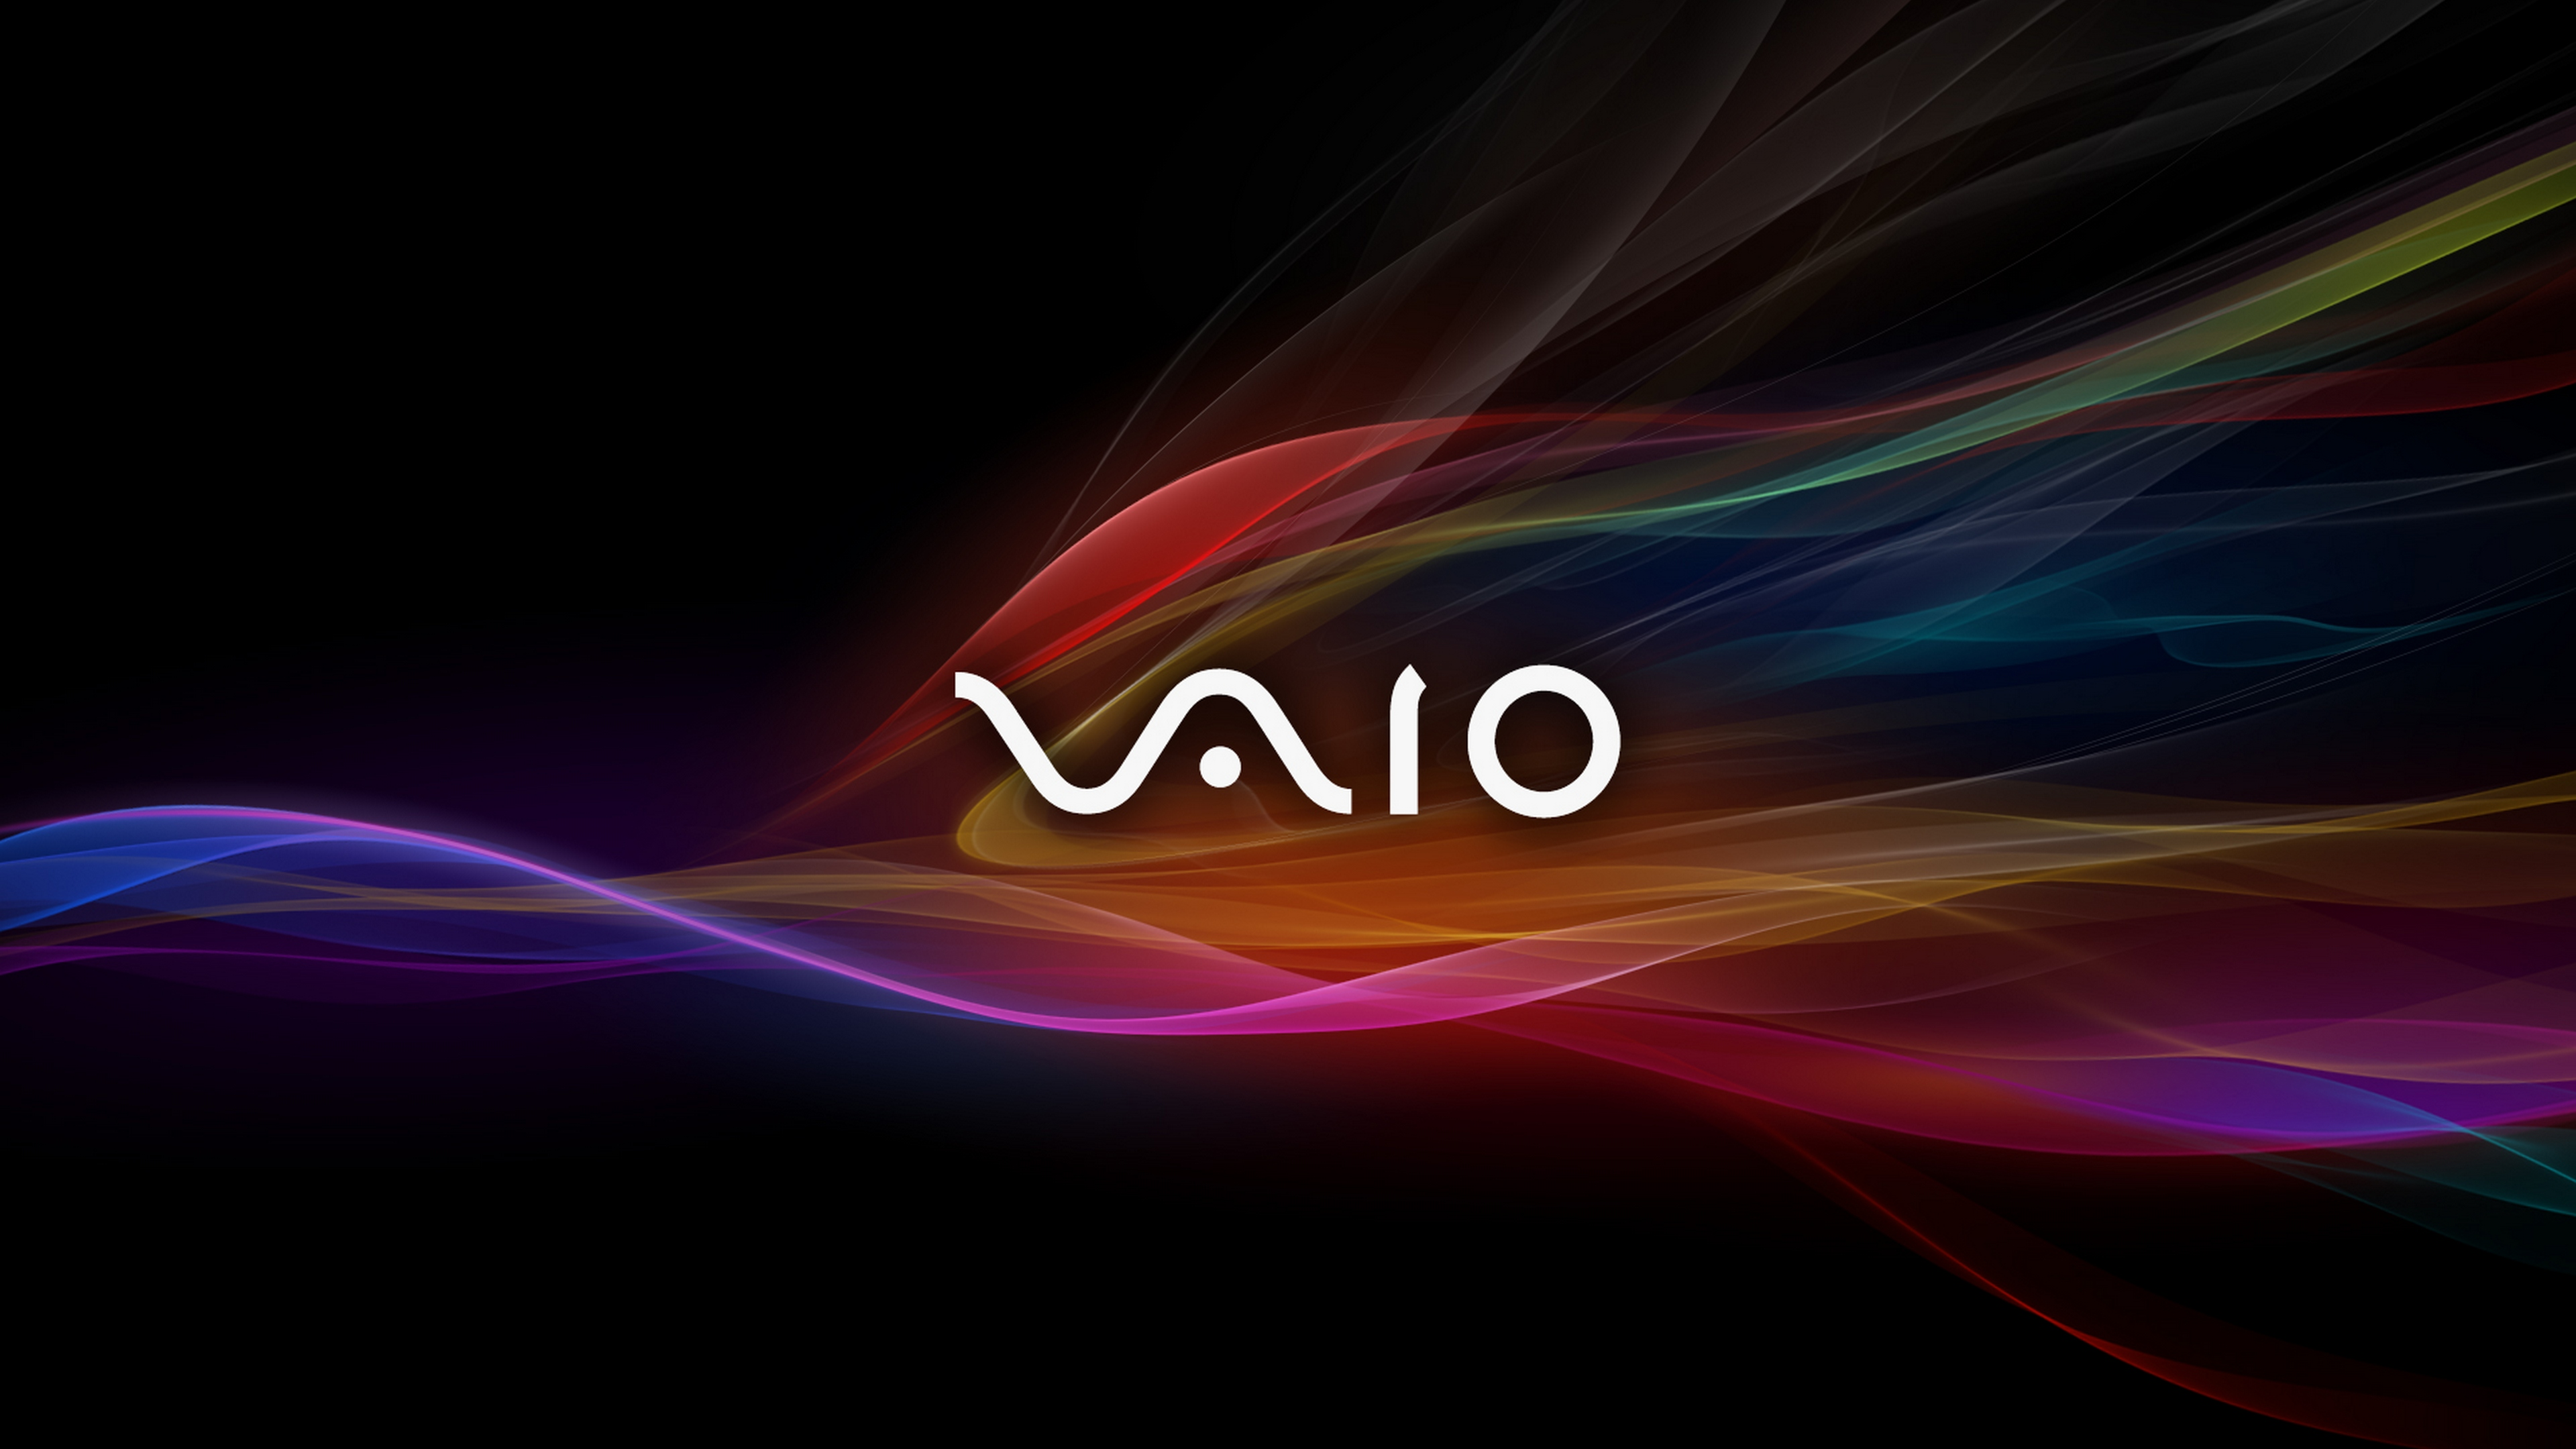 sony vaio fit wallpaper 4k by wishajen